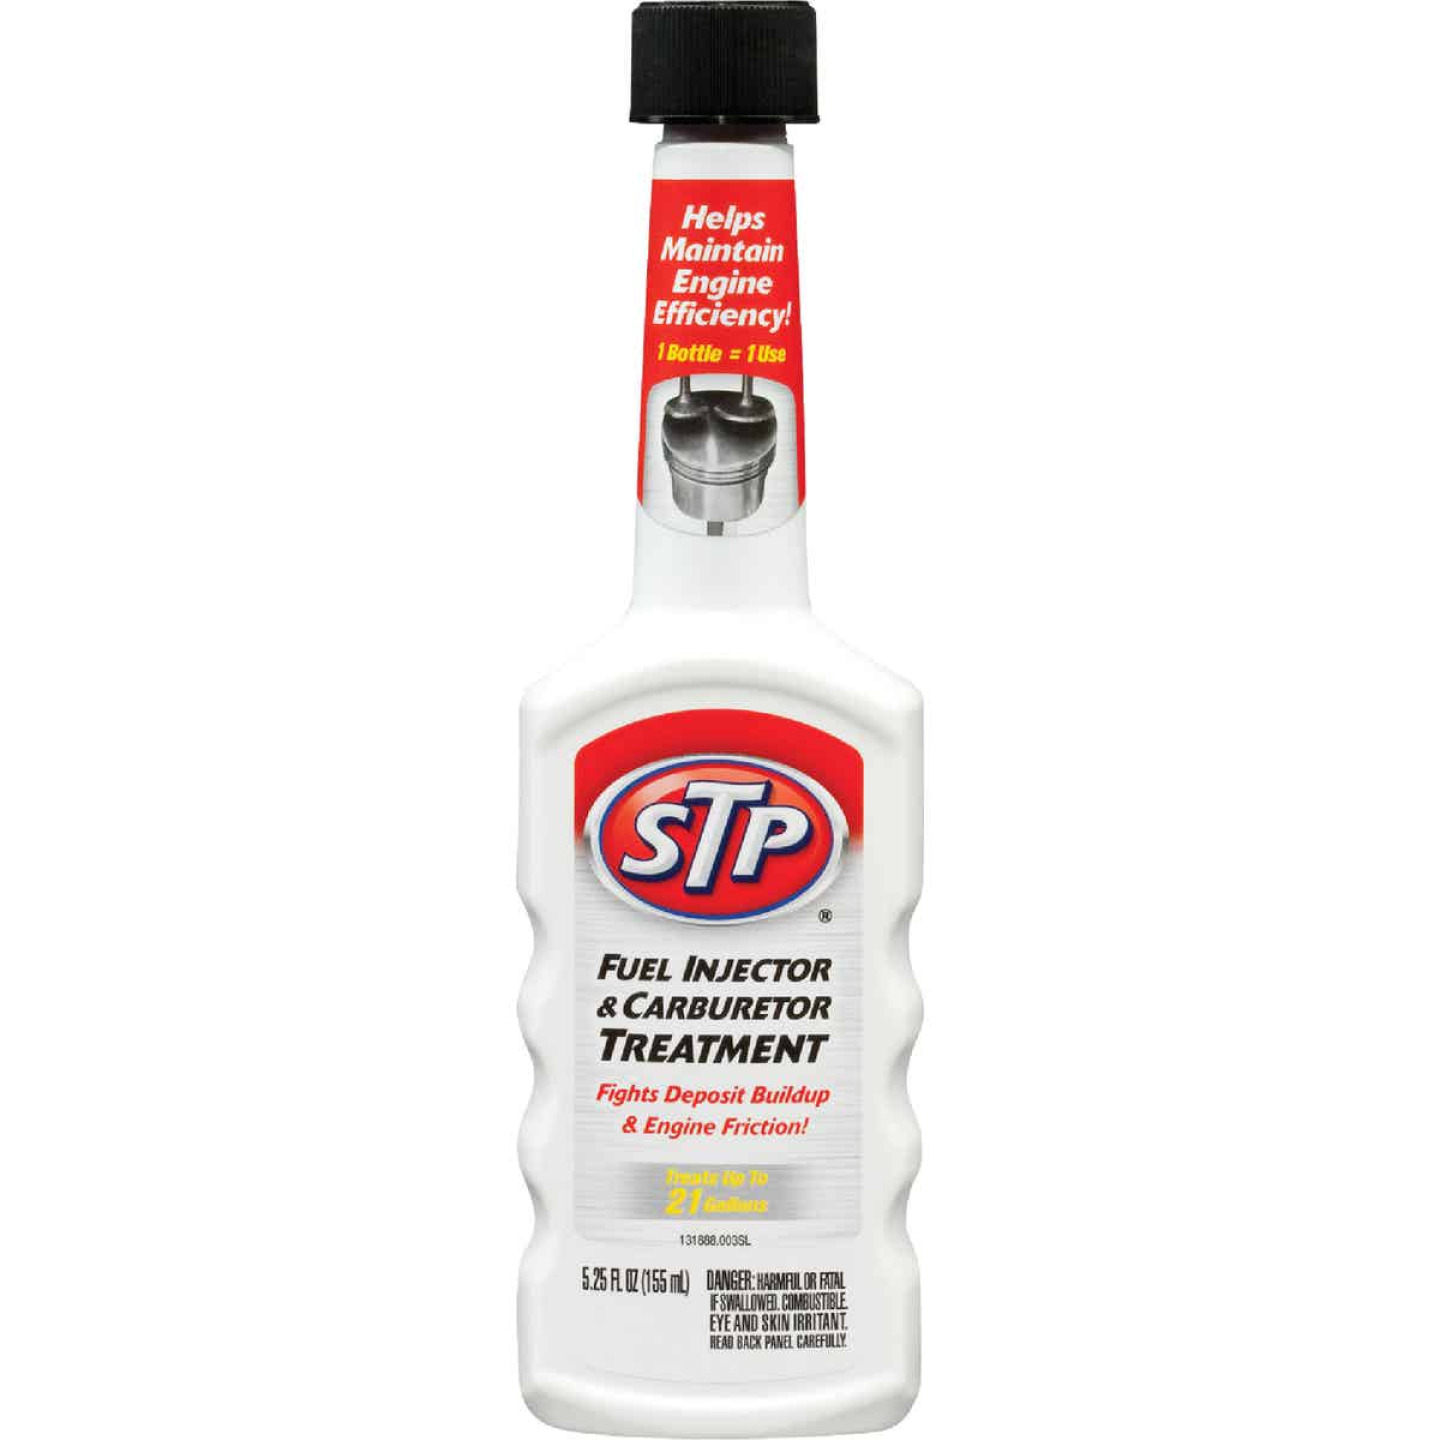 STP 5.25 Fl. Oz. Fuel Injector and Carburetor Fuel System Cleaner Image 1